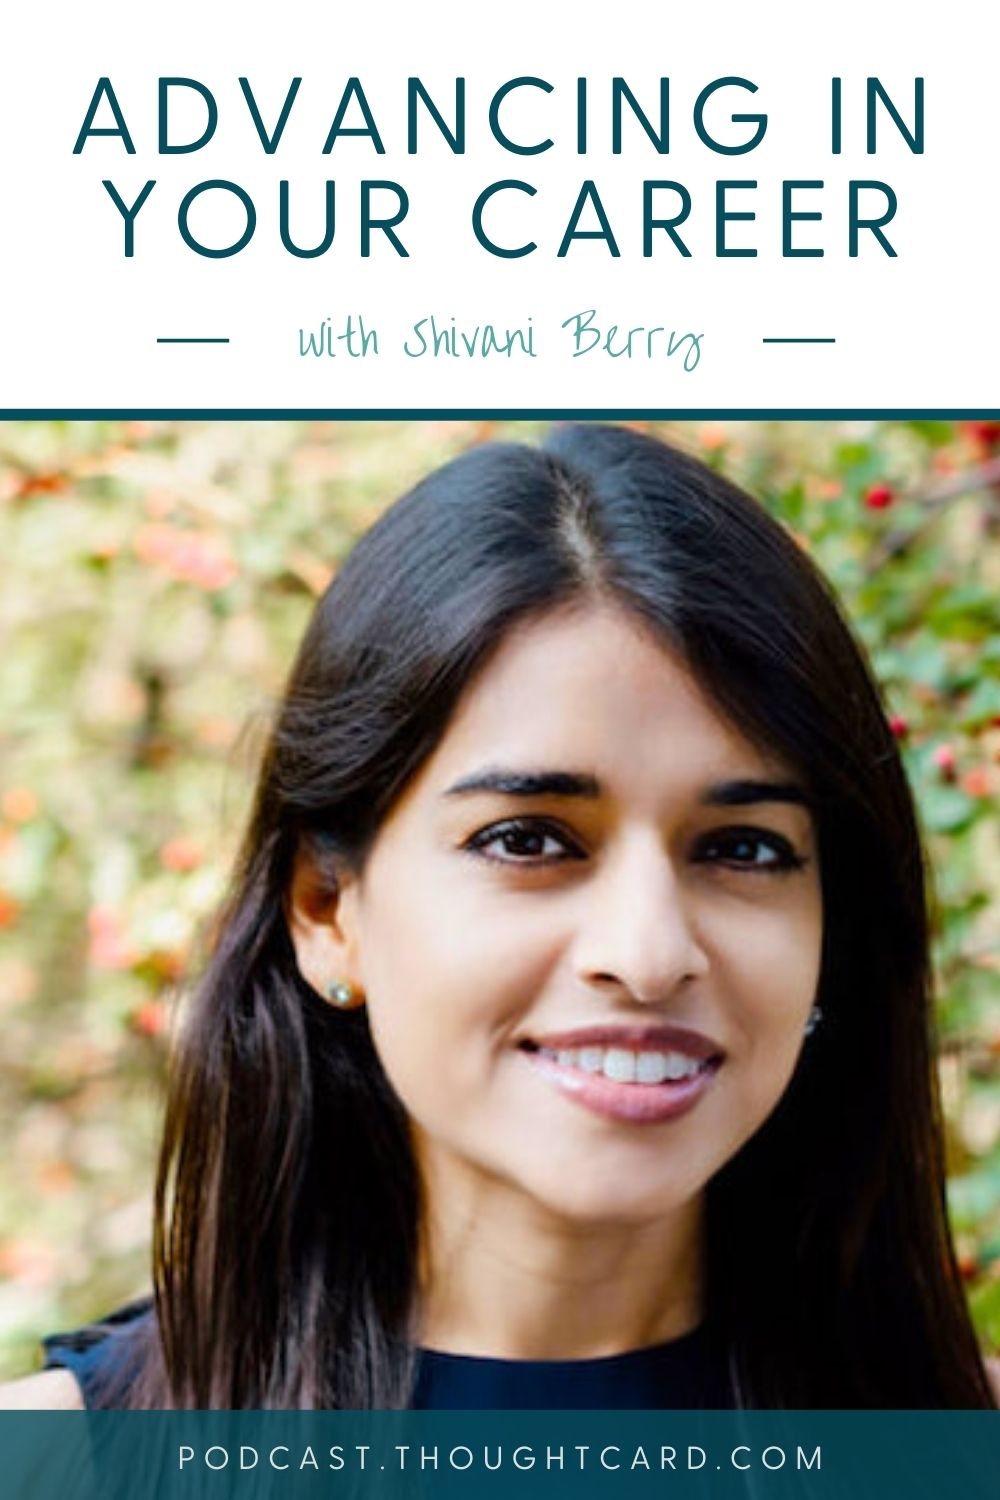 Shivani Berry is a career coach and founder of Ascend